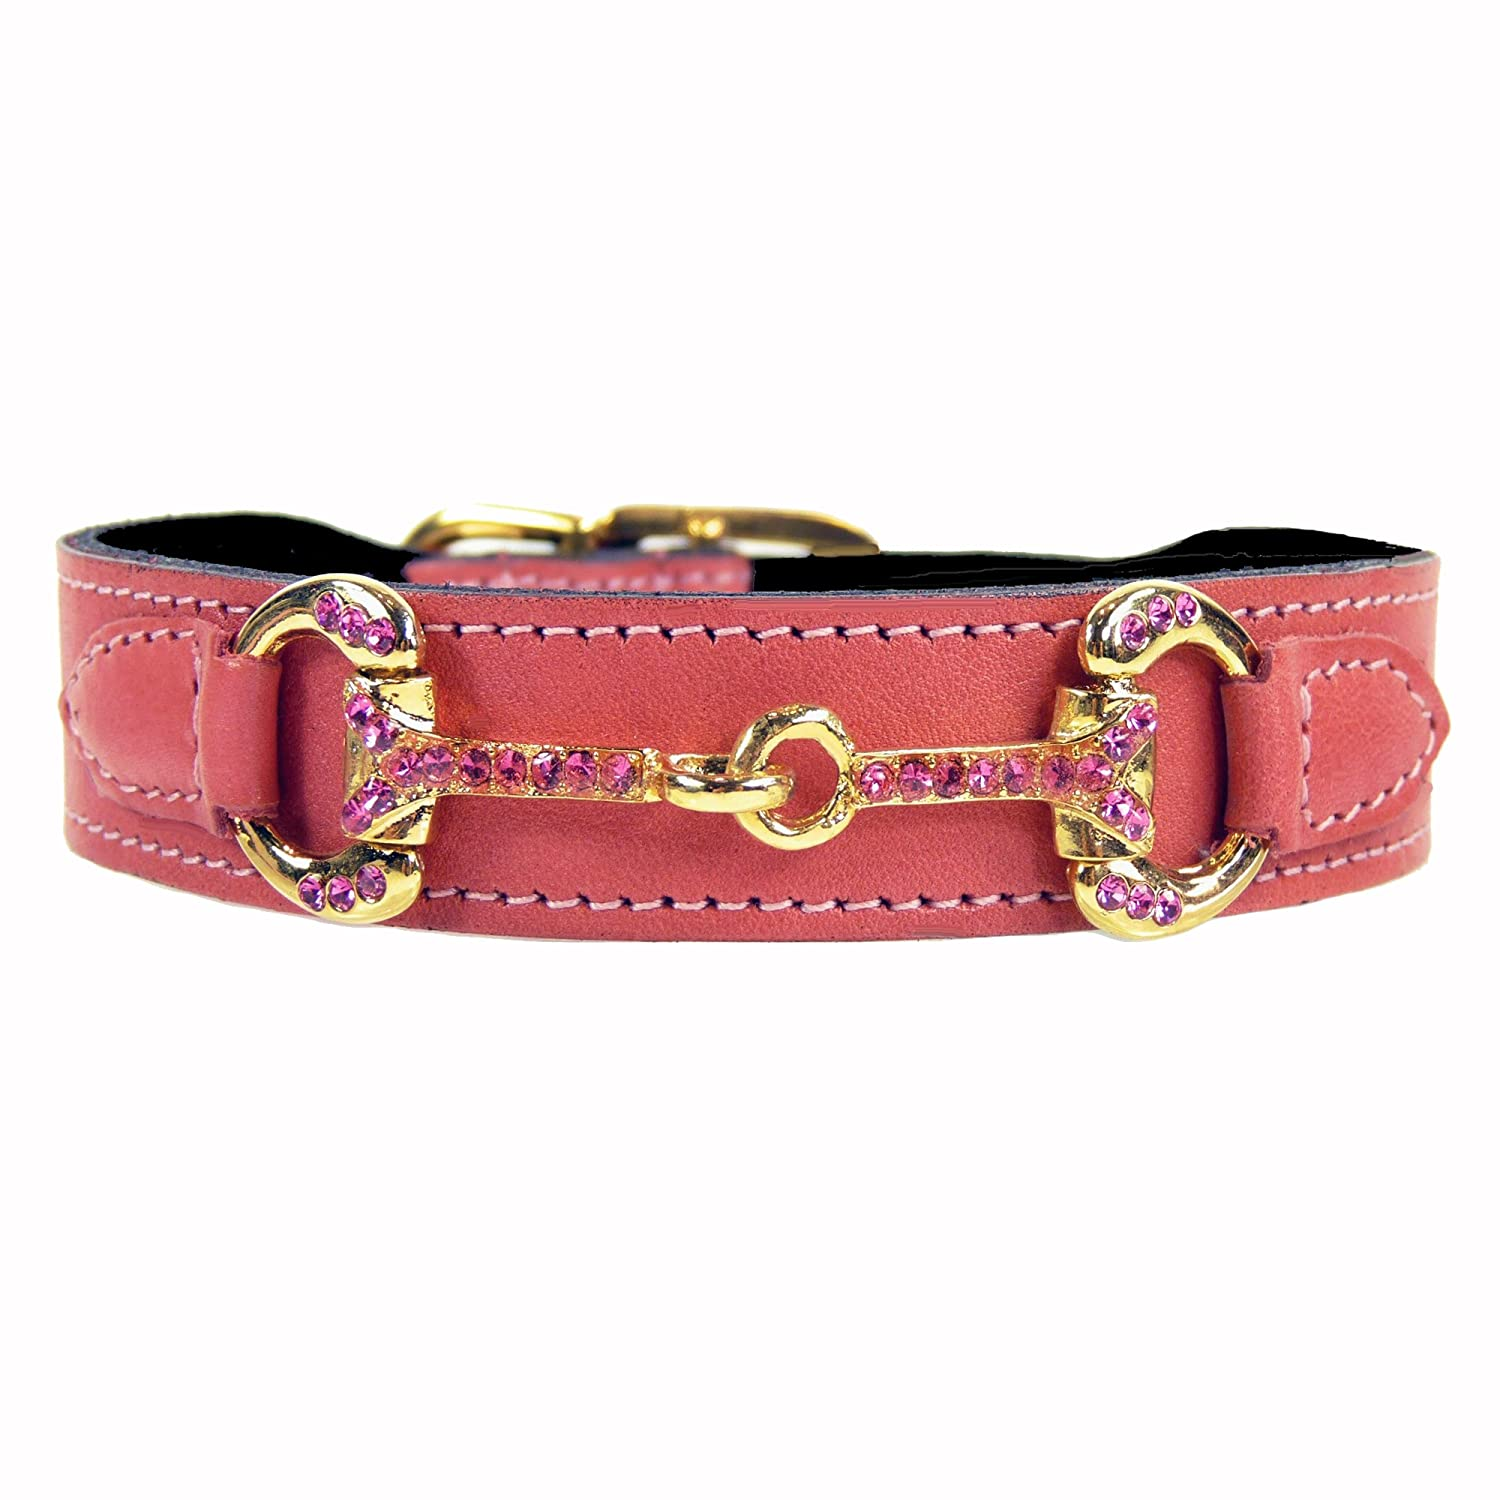 Hartman & pink Horse and Hound Dog Collar, 18 to 20-Inch, Petal Pink